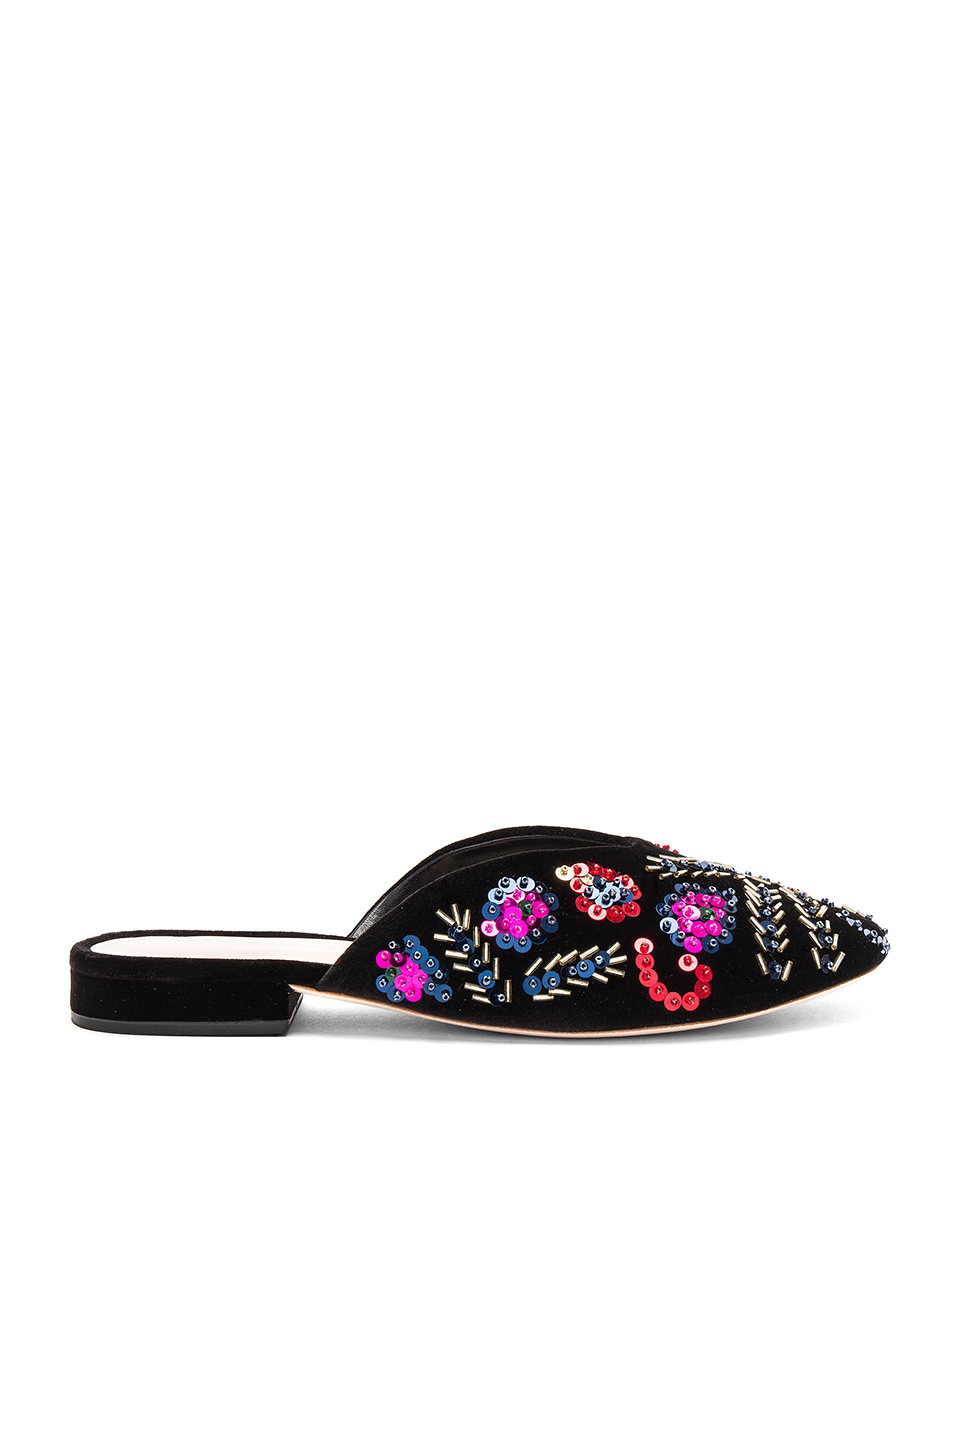 Loeffler Randall Quin Slide in Black & Multi